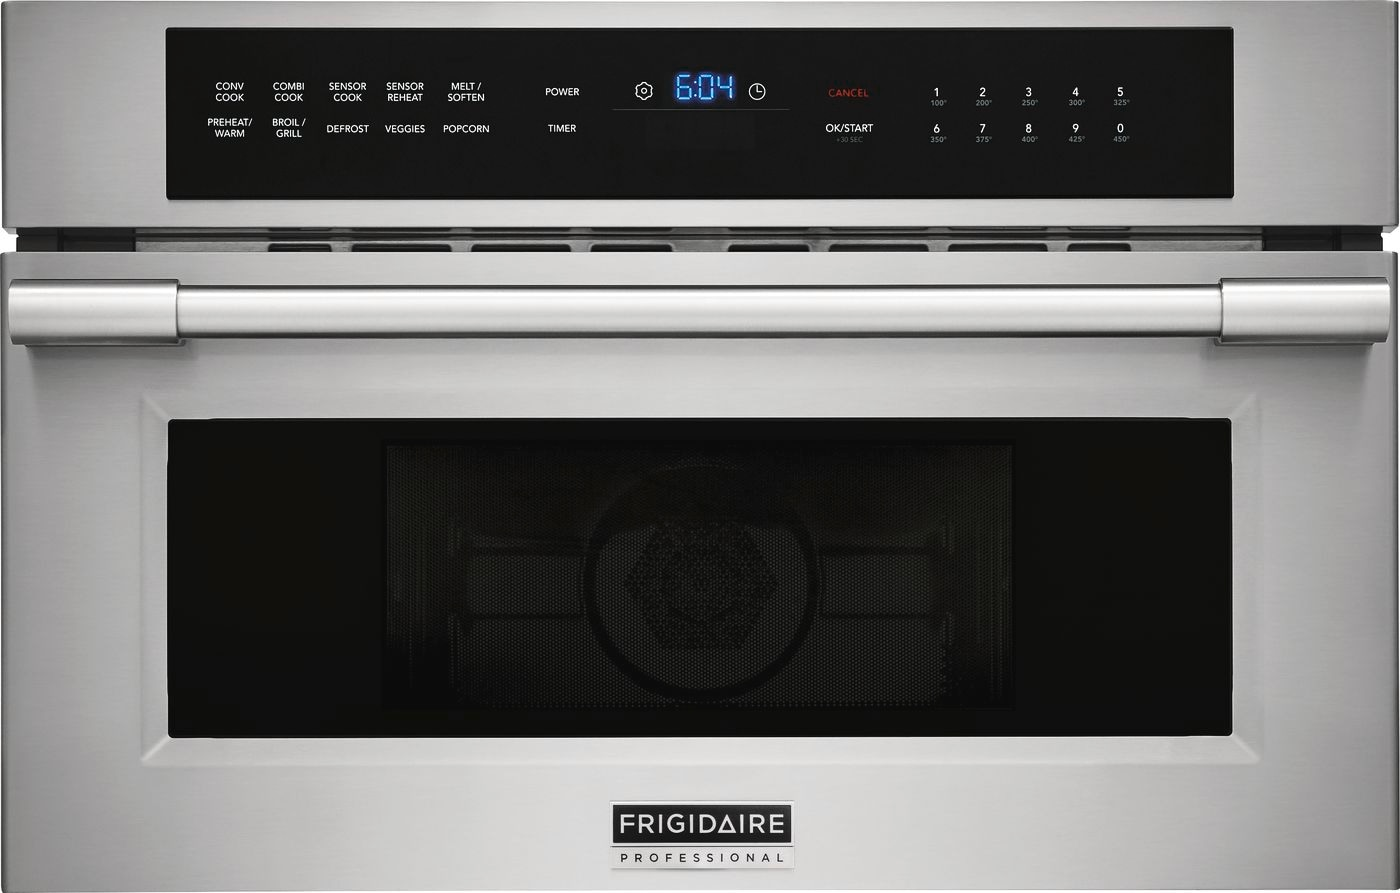 "Frigidaire Professional 30"" Built-In Convection Microwave Oven with Drop-Down Door"